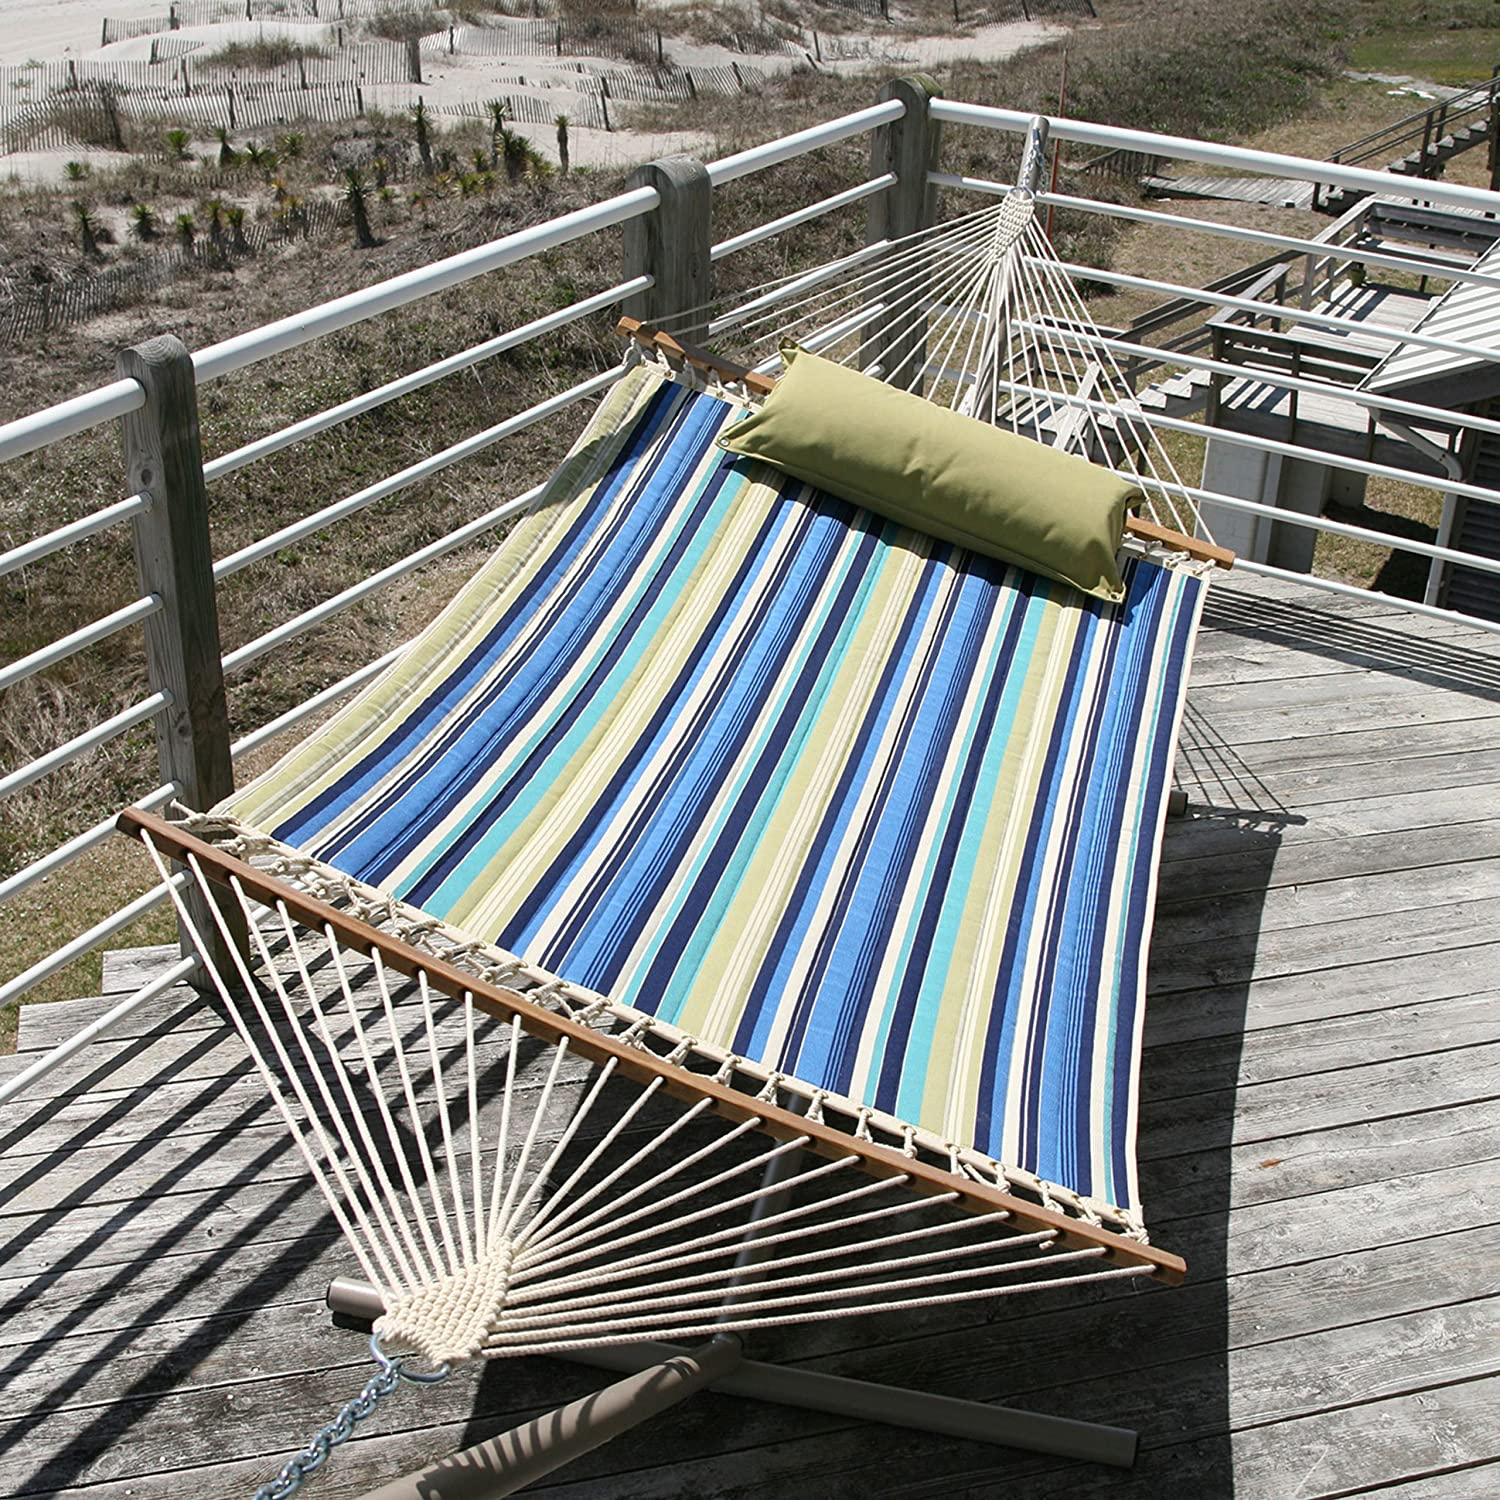 styled hammocks good weather sturdy hammock outdoor outside made two in for adecotrading best pinterest beds people chinese images holds lounging this up bermuda adeco ideal on to comes oak and chaise with is